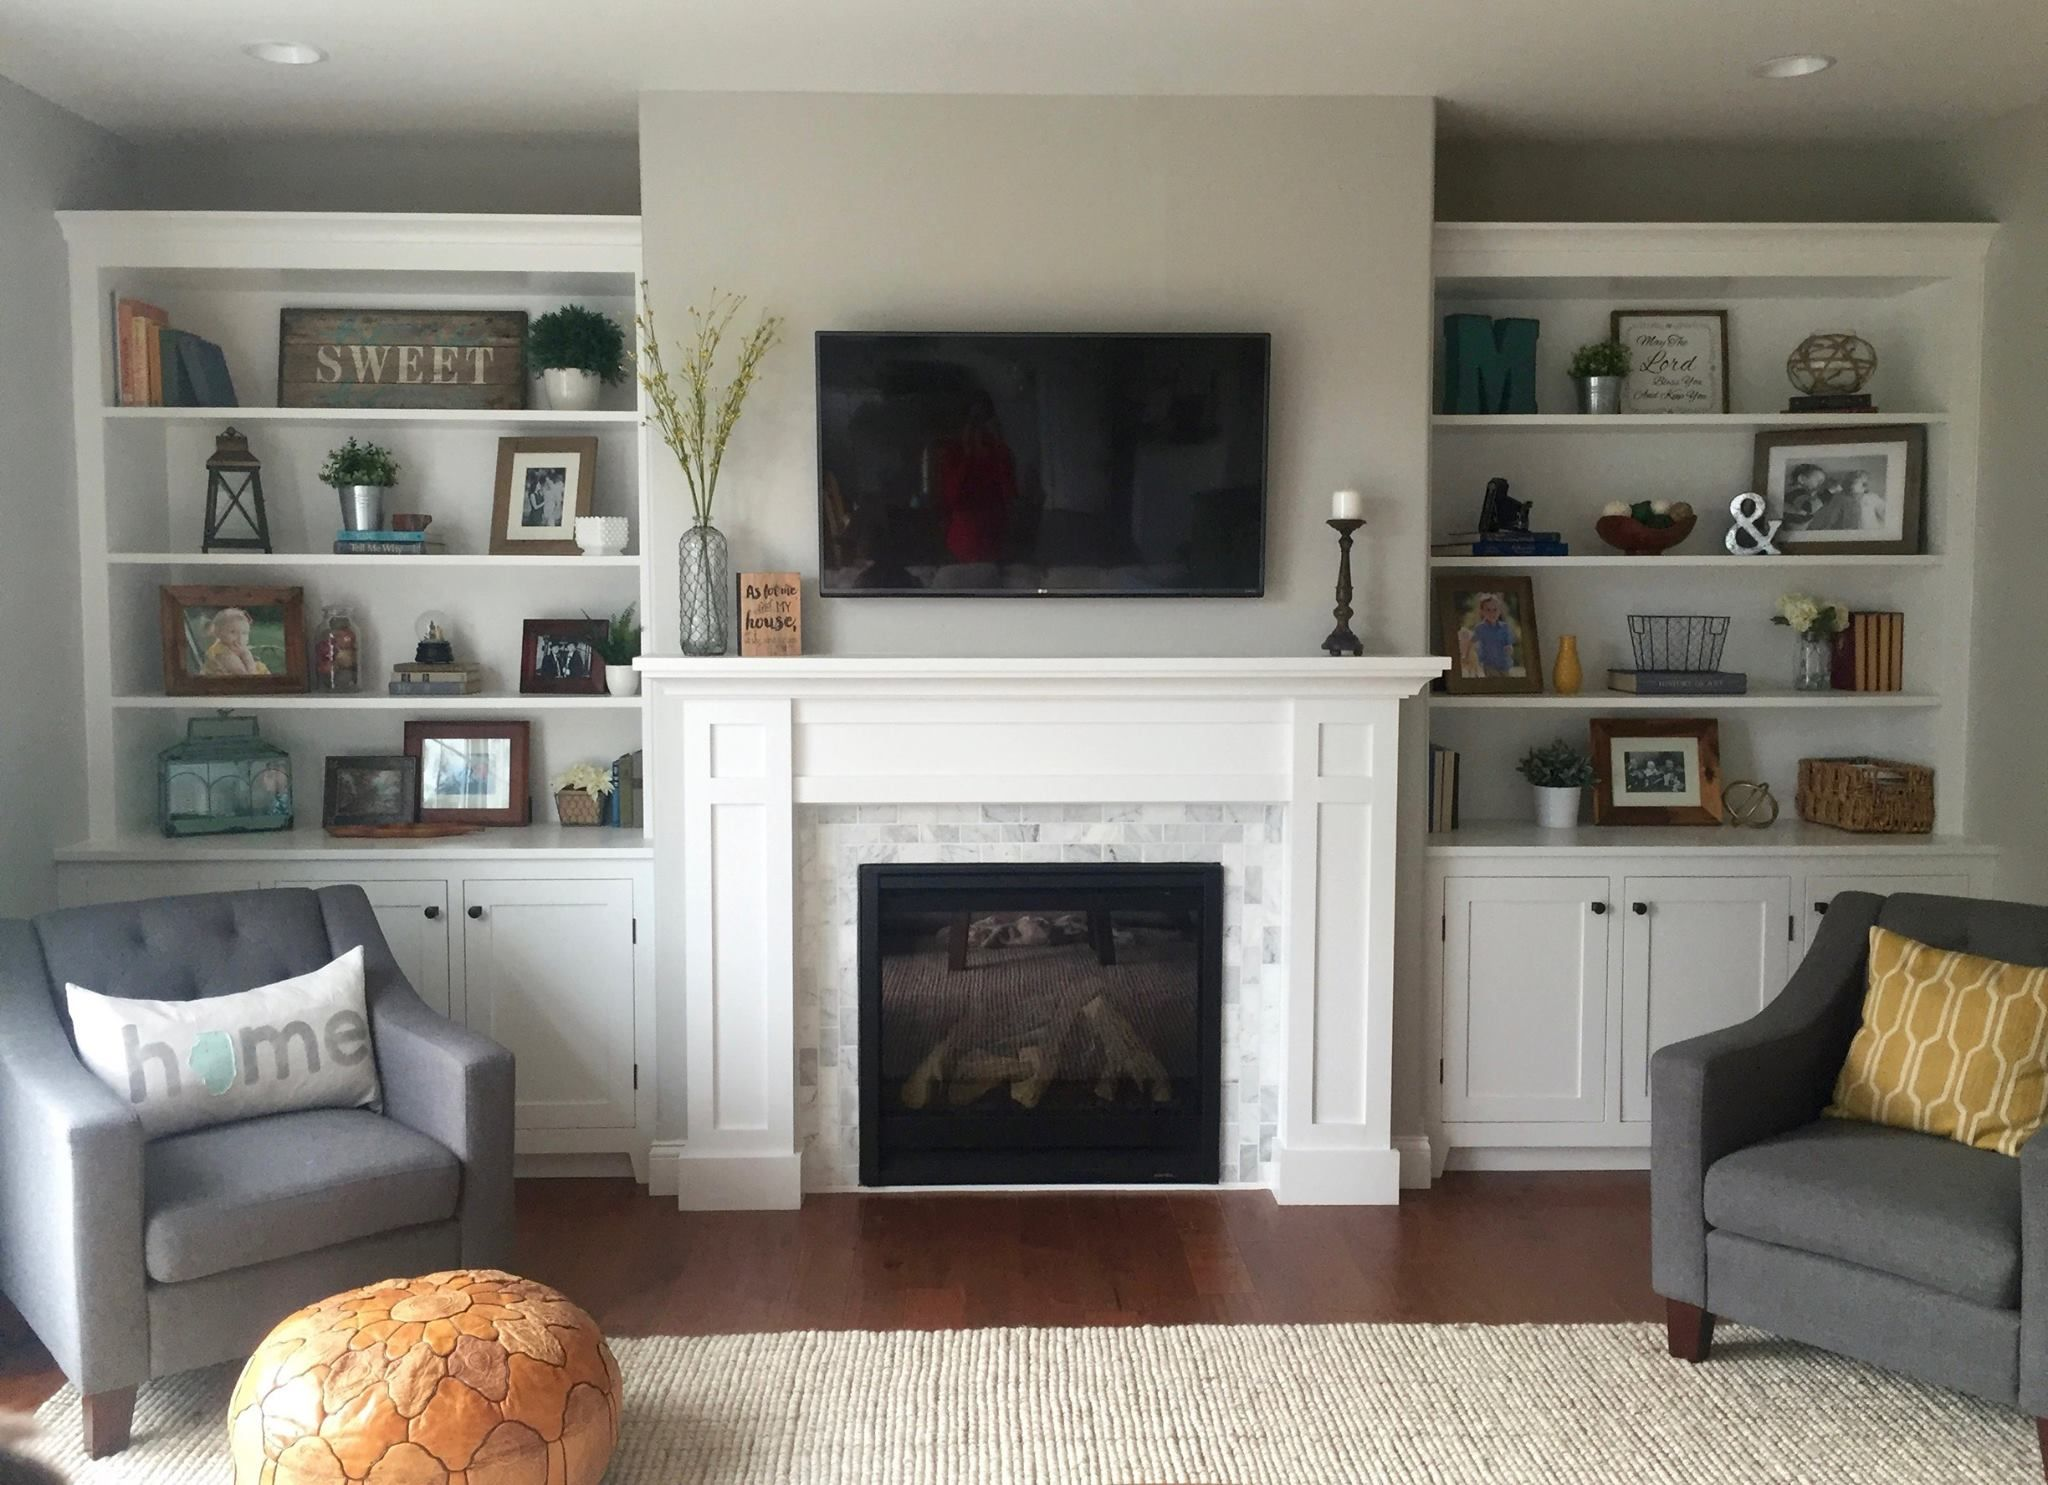 ***Instructions To Build This Fireplace Mantel With Built In Cabinets And  Bookshelves. Shaker Style Made Out Of Solid Poplar And Birch Plywood.